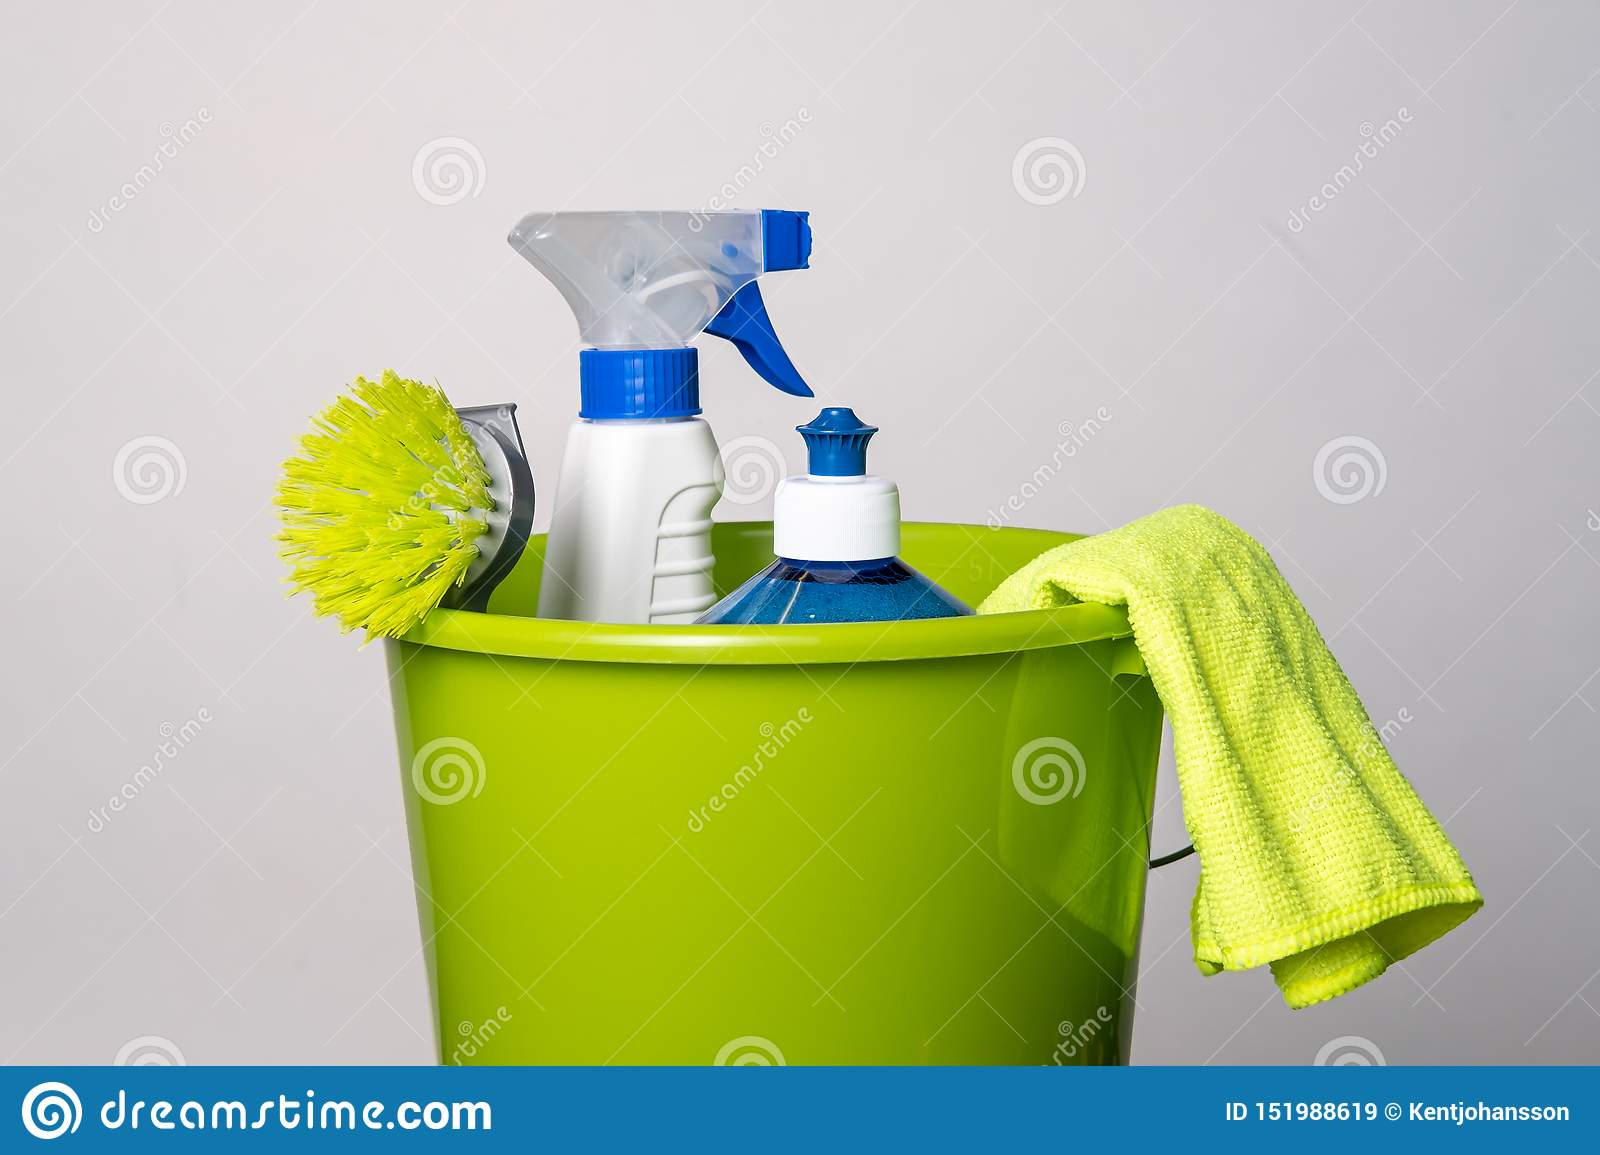 Cleaning products in green bucket